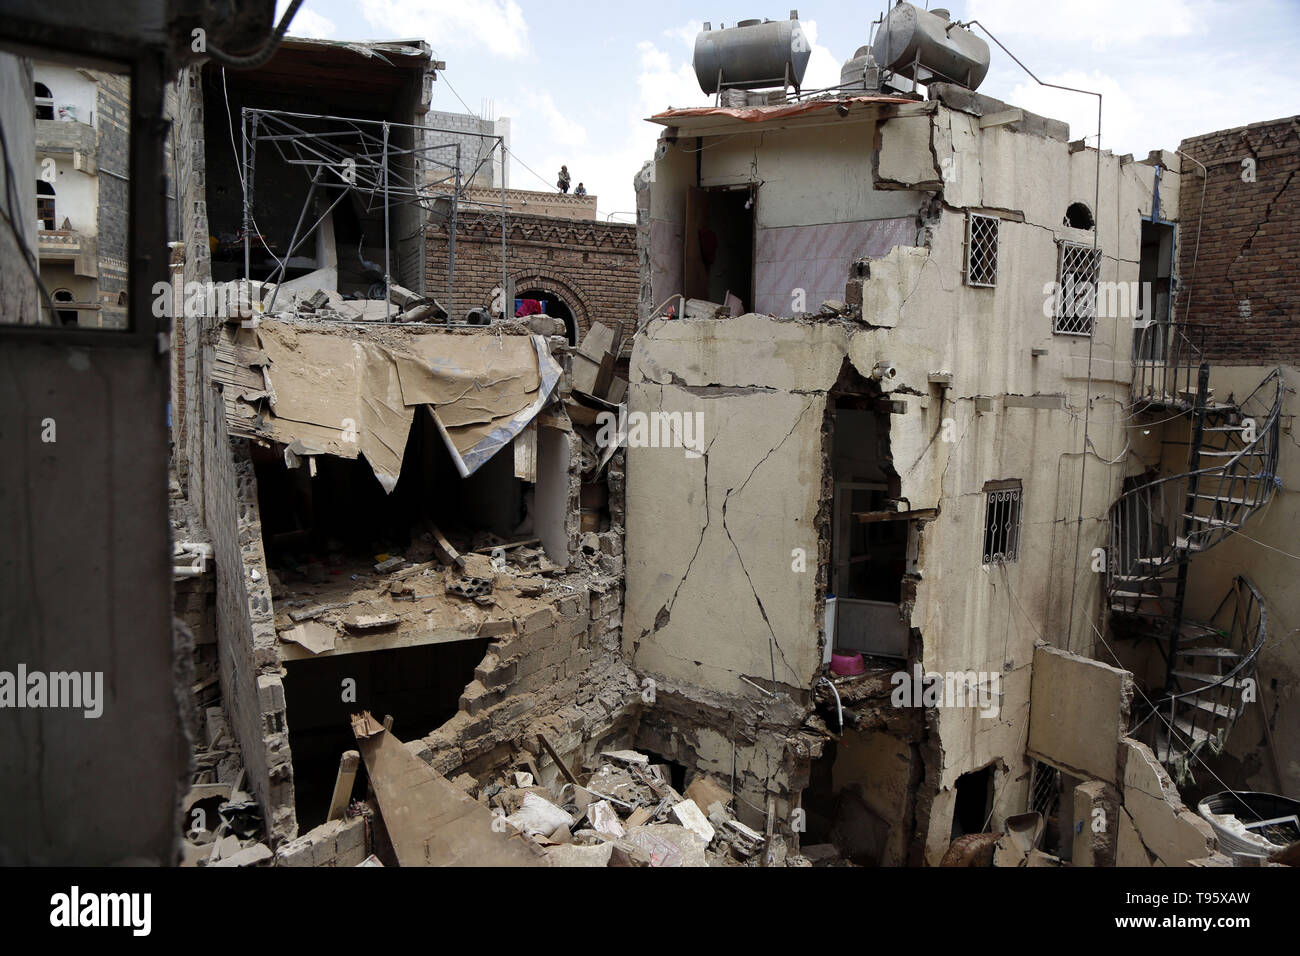 Beijing, China. 16th May, 2019. Photo taken on May 16, 2019 shows damaged houses after an airstrike by the Saudi Arabia-led coalition in Sanaa of Yemen. Credit: Mohammed Mohammed/Xinhua/Alamy Live News - Stock Image